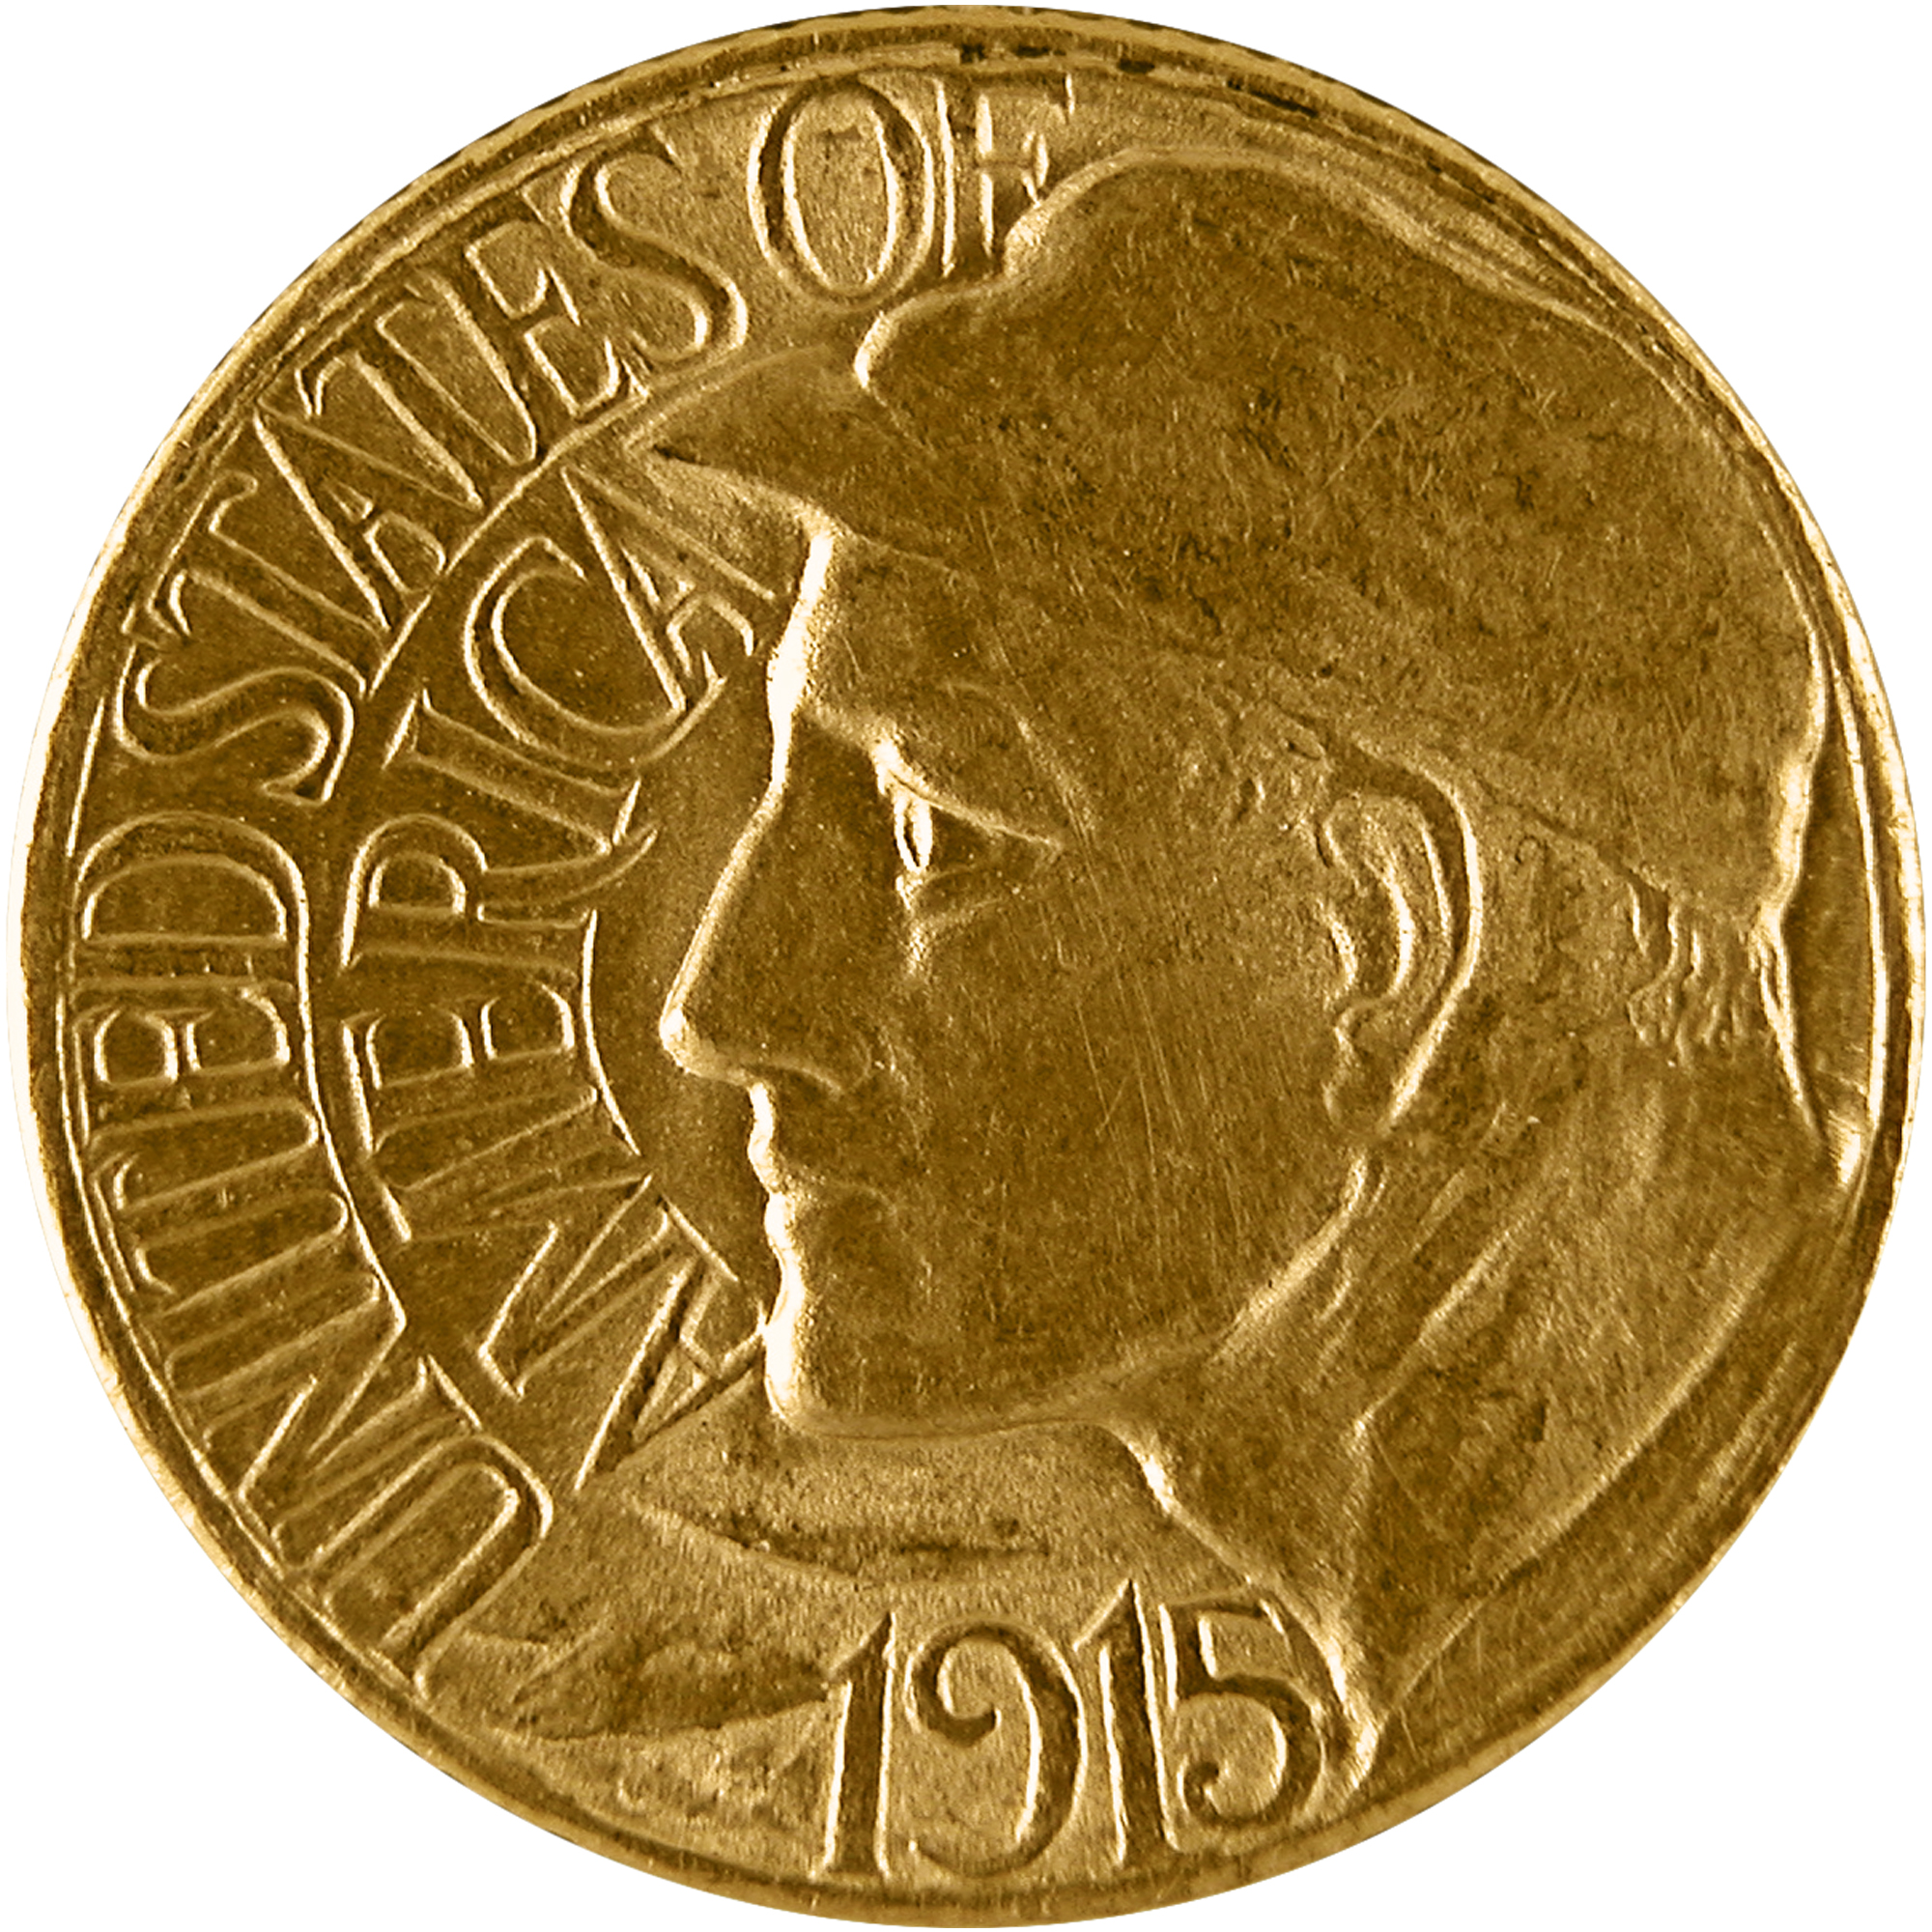 1915 Panama Pacific Exposition Commemorative Gold One Dollar Coin Obverse